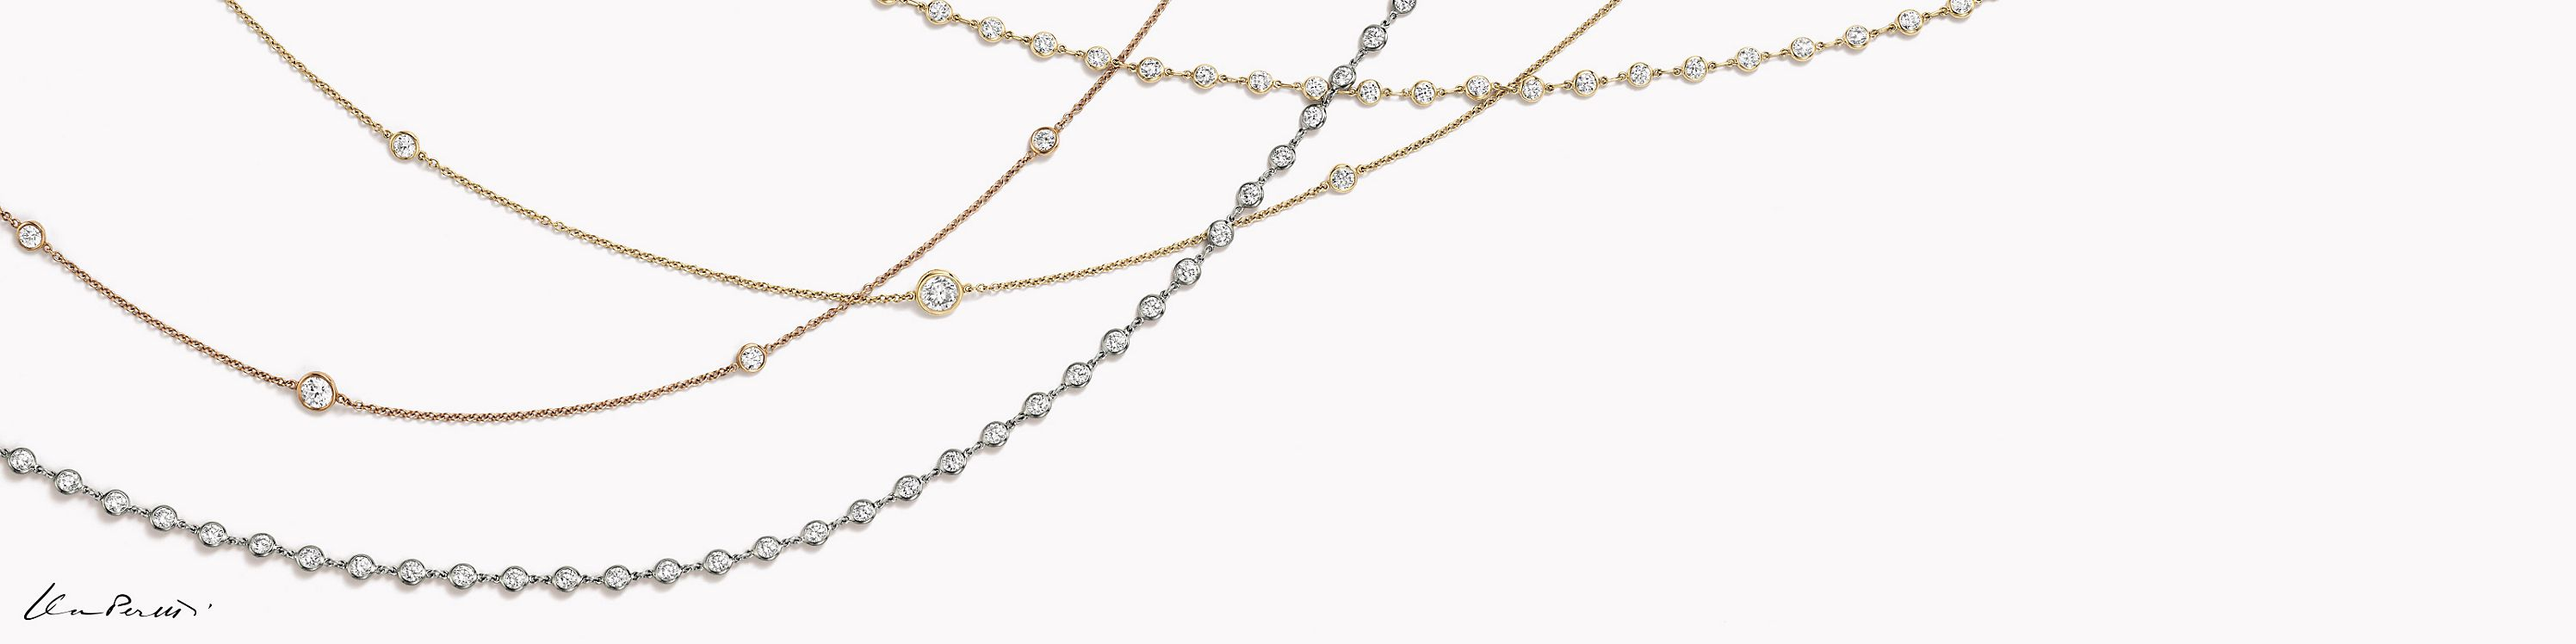 Shop Elsa Peretti® Diamonds by the Yard